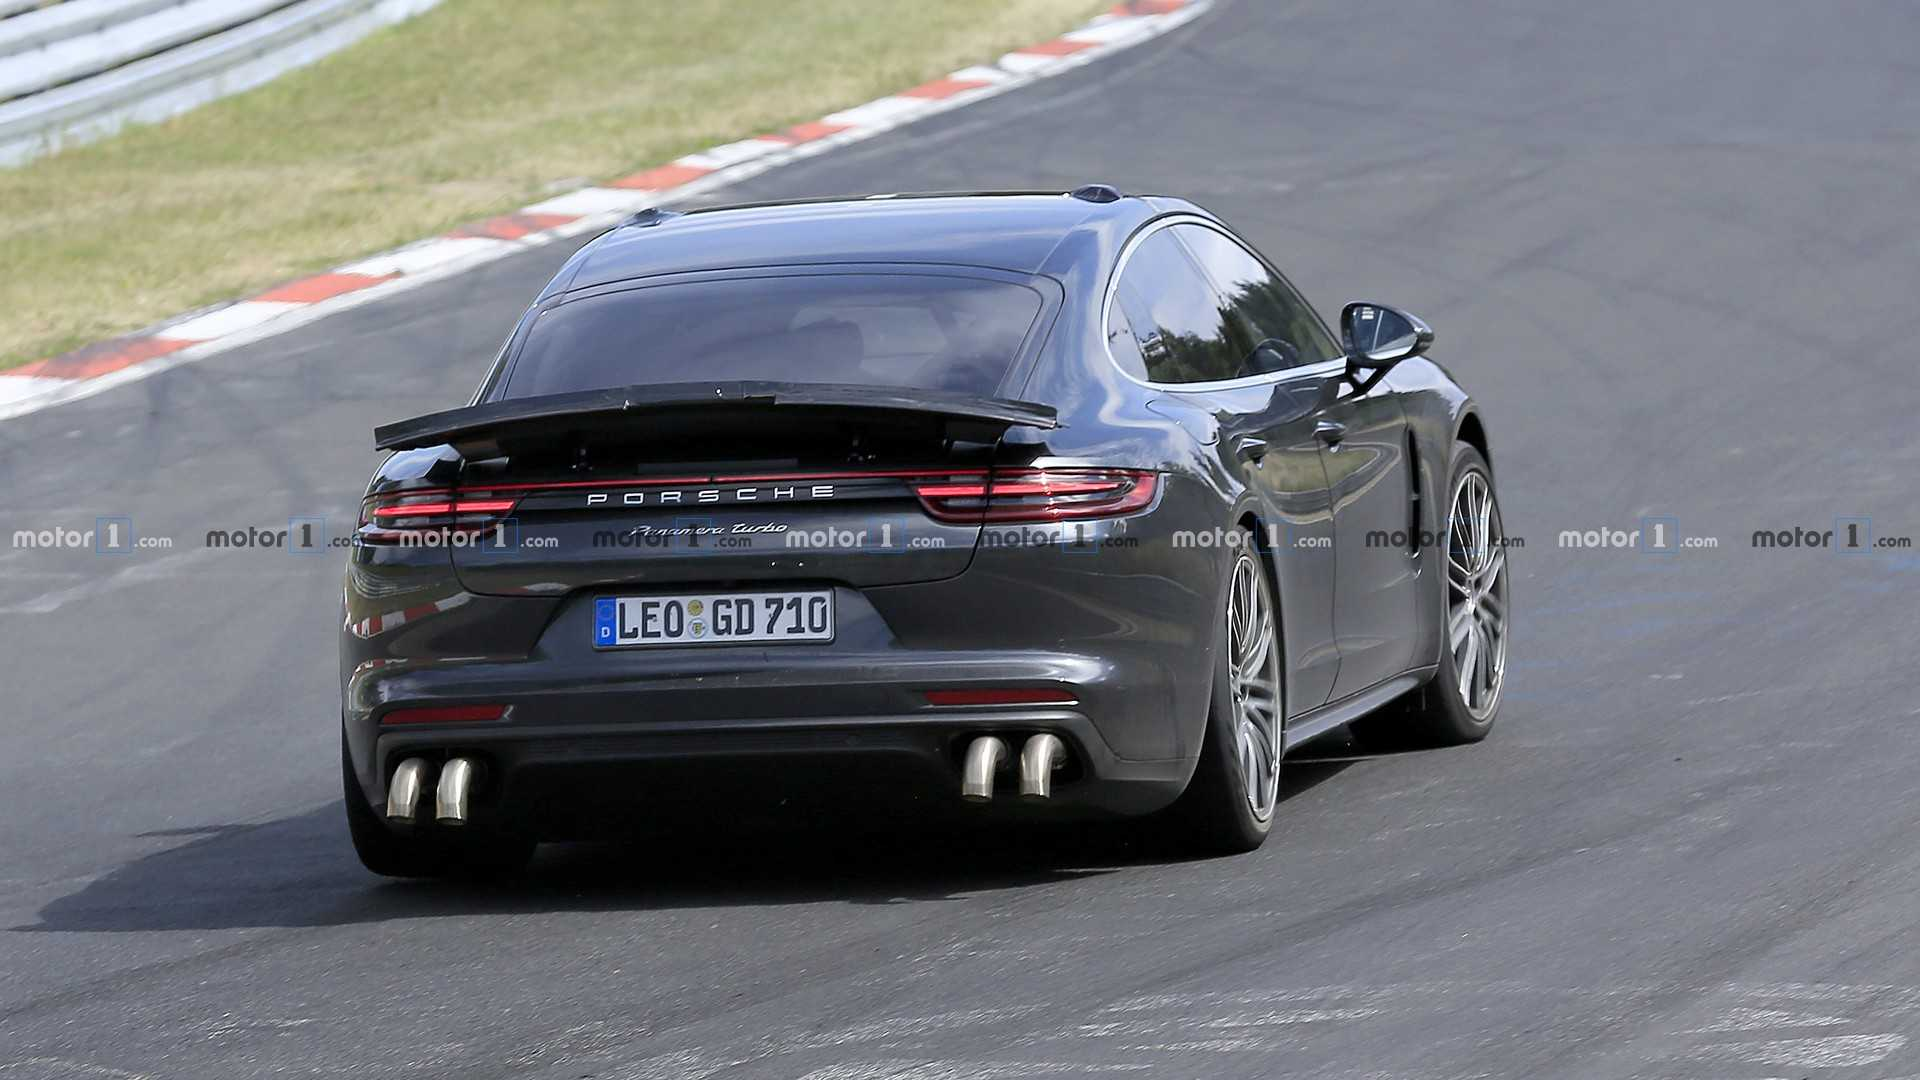 Porsche Panamera Spied With Long Exhaust Tips Could Pack 820 HP